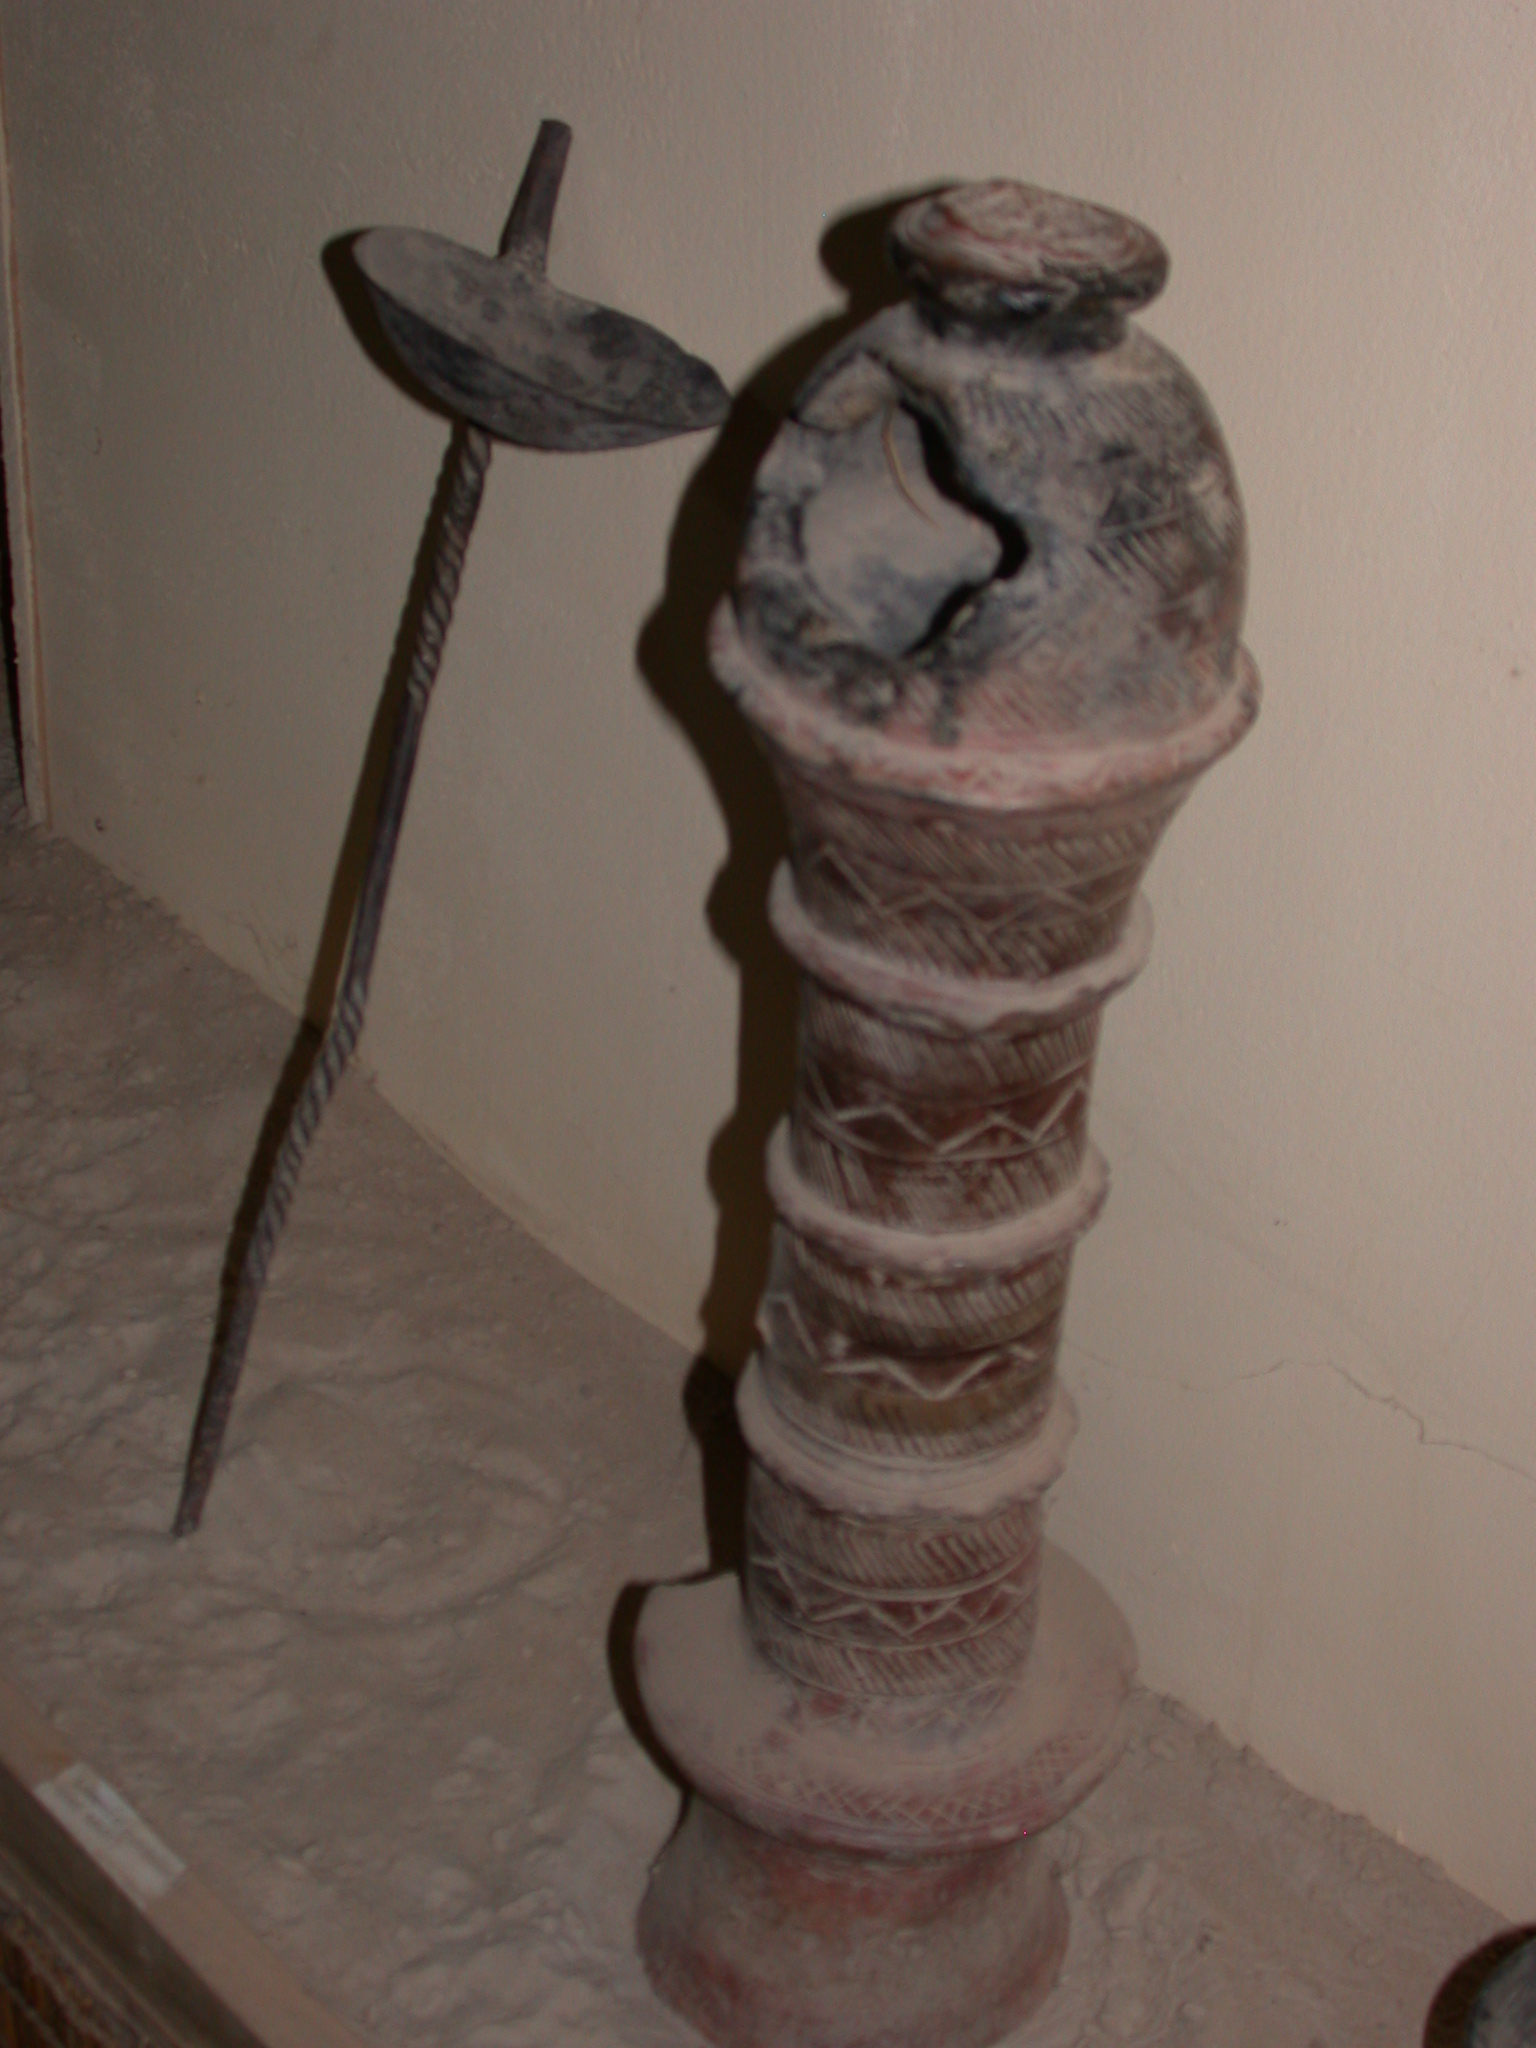 Lamp or Incense Burner, Timbuktu Ethnological Museum, Timbuktu, Mali